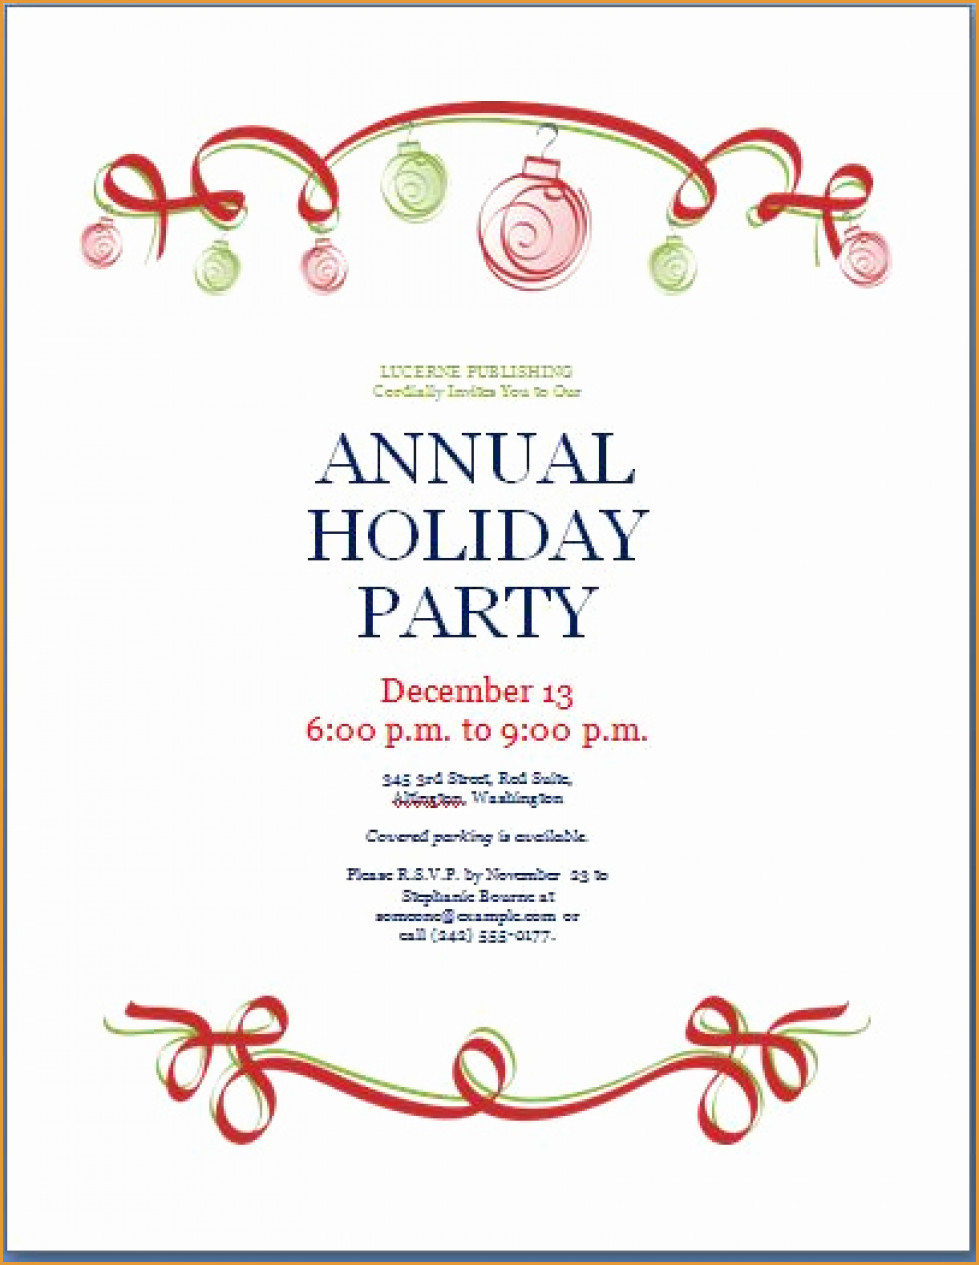 Party Invitations: Incredible Holiday Party Invitations Templates - Free Printable Christmas Party Invitations